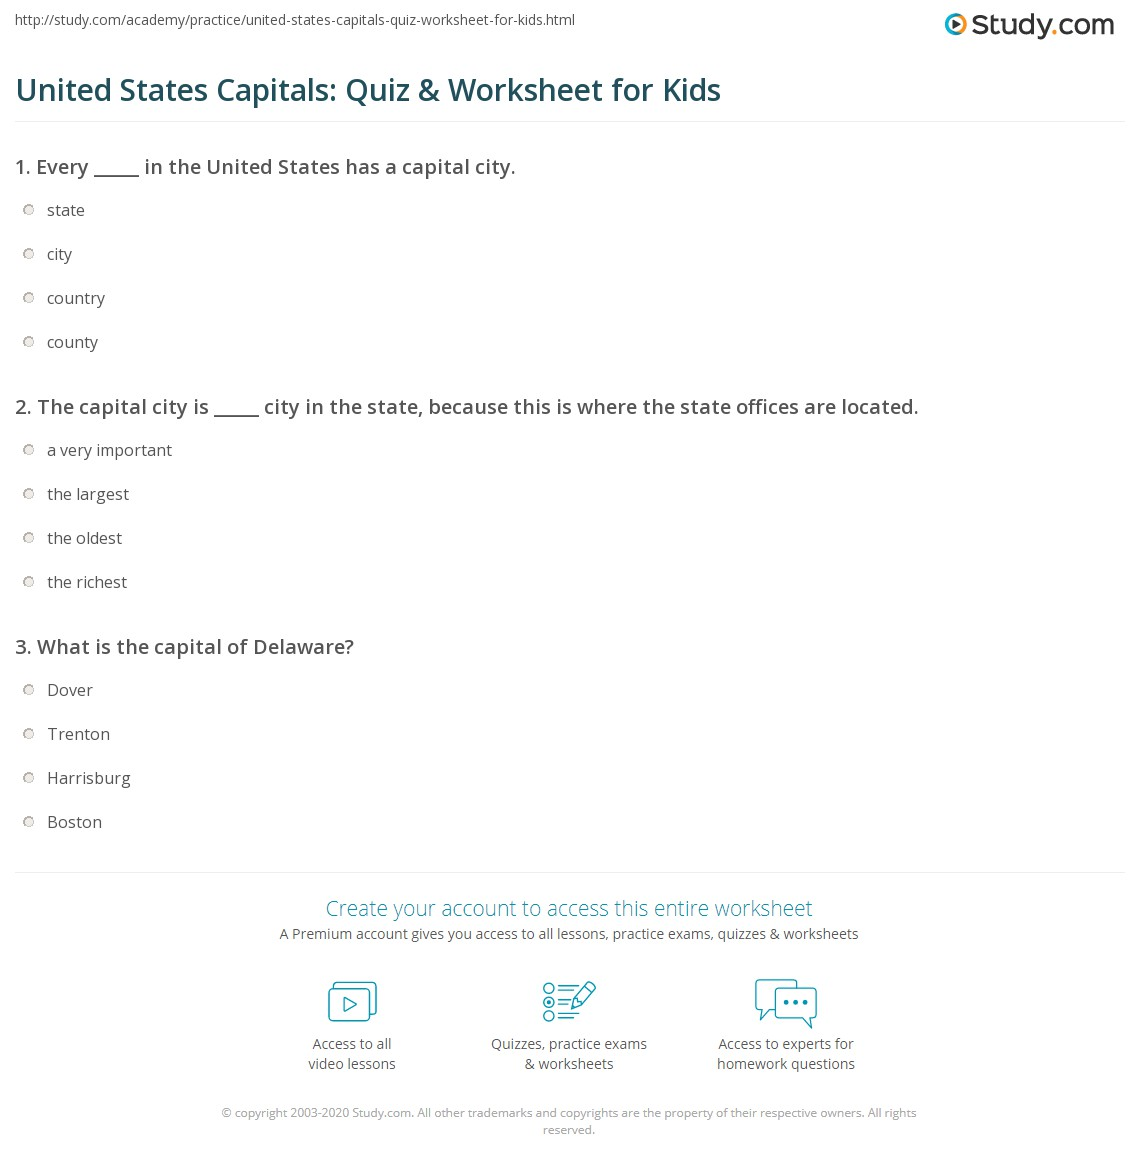 United States Capitals: Quiz & Worksheet for Kids | Study.com on